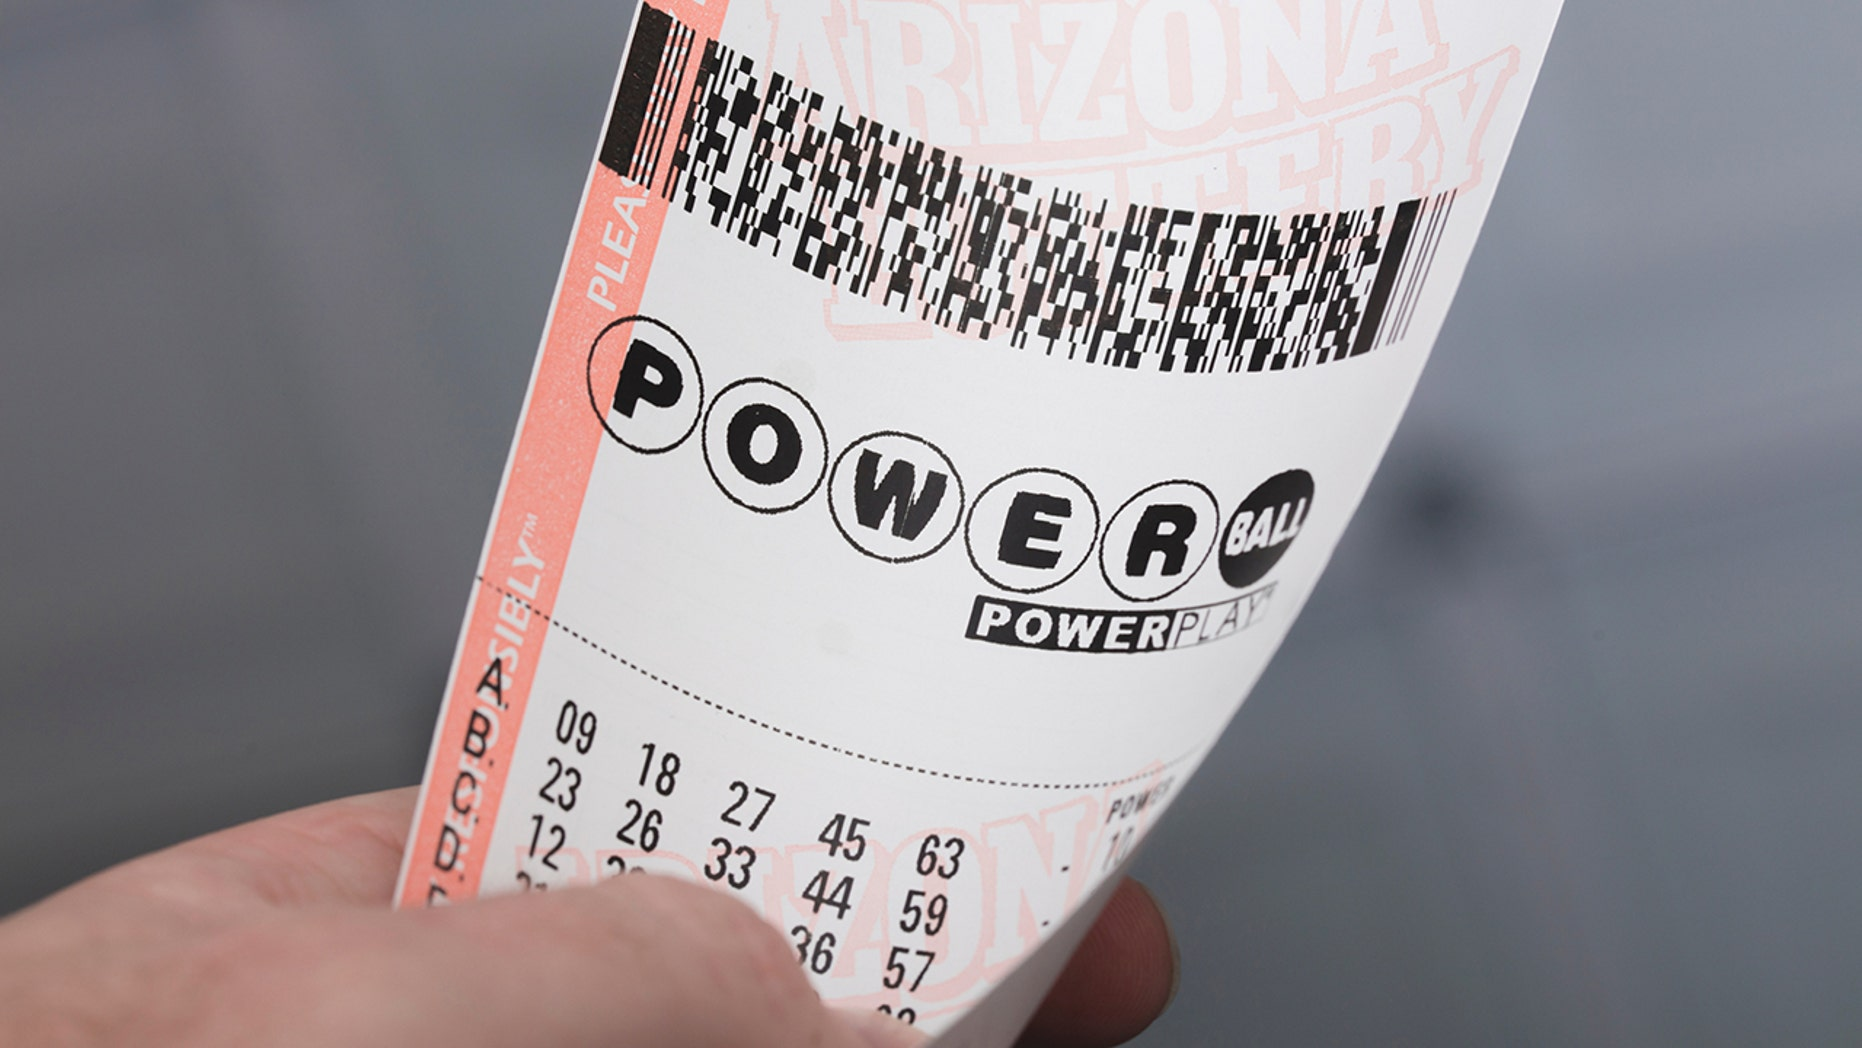 Kingman, USA - January 20, 2016: A photo of a man holding a Powerball lottery ticket in Kingman, Arizona.